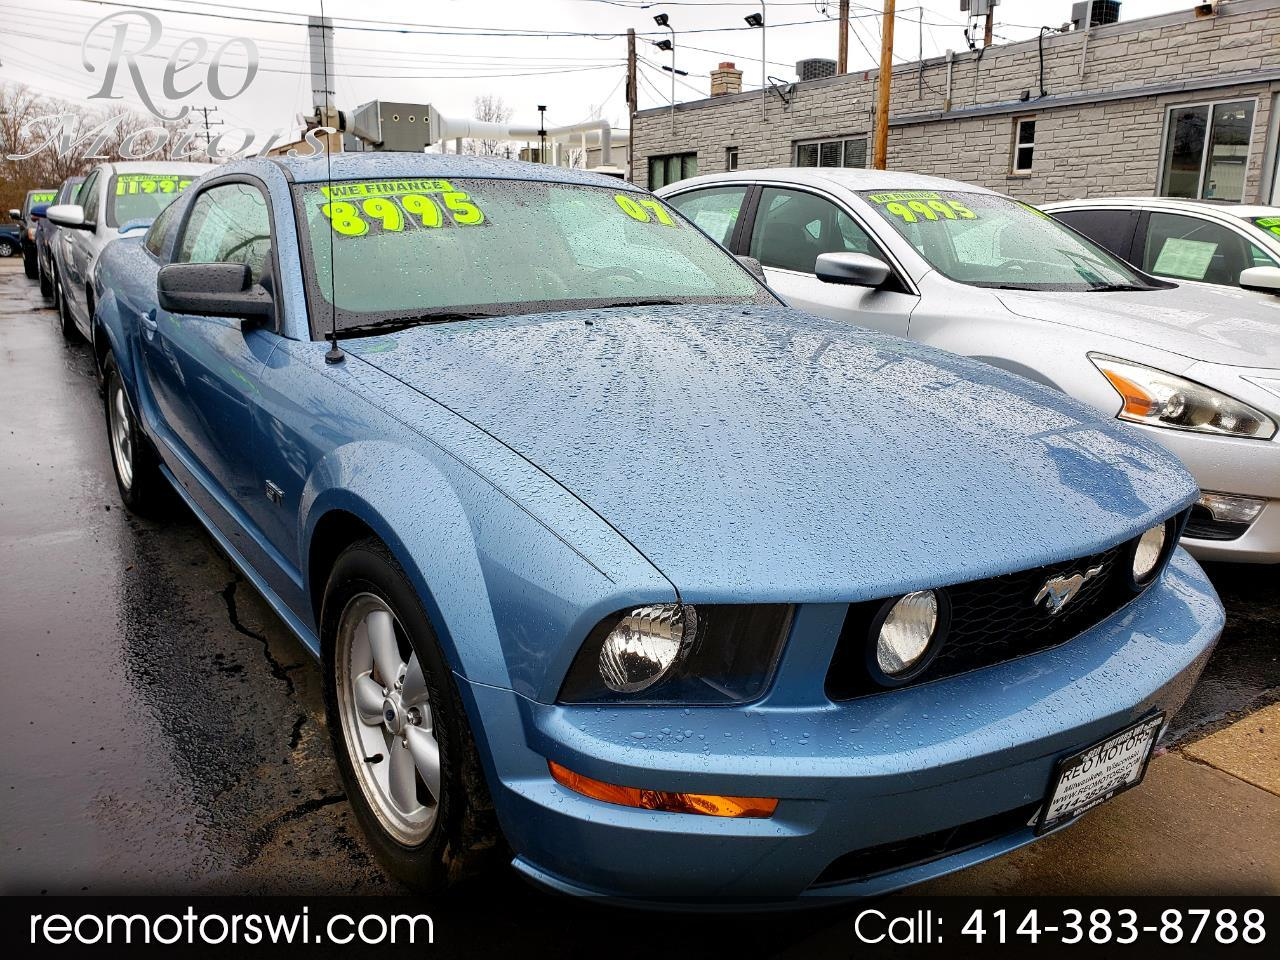 2007 Ford Mustang GT Coupe